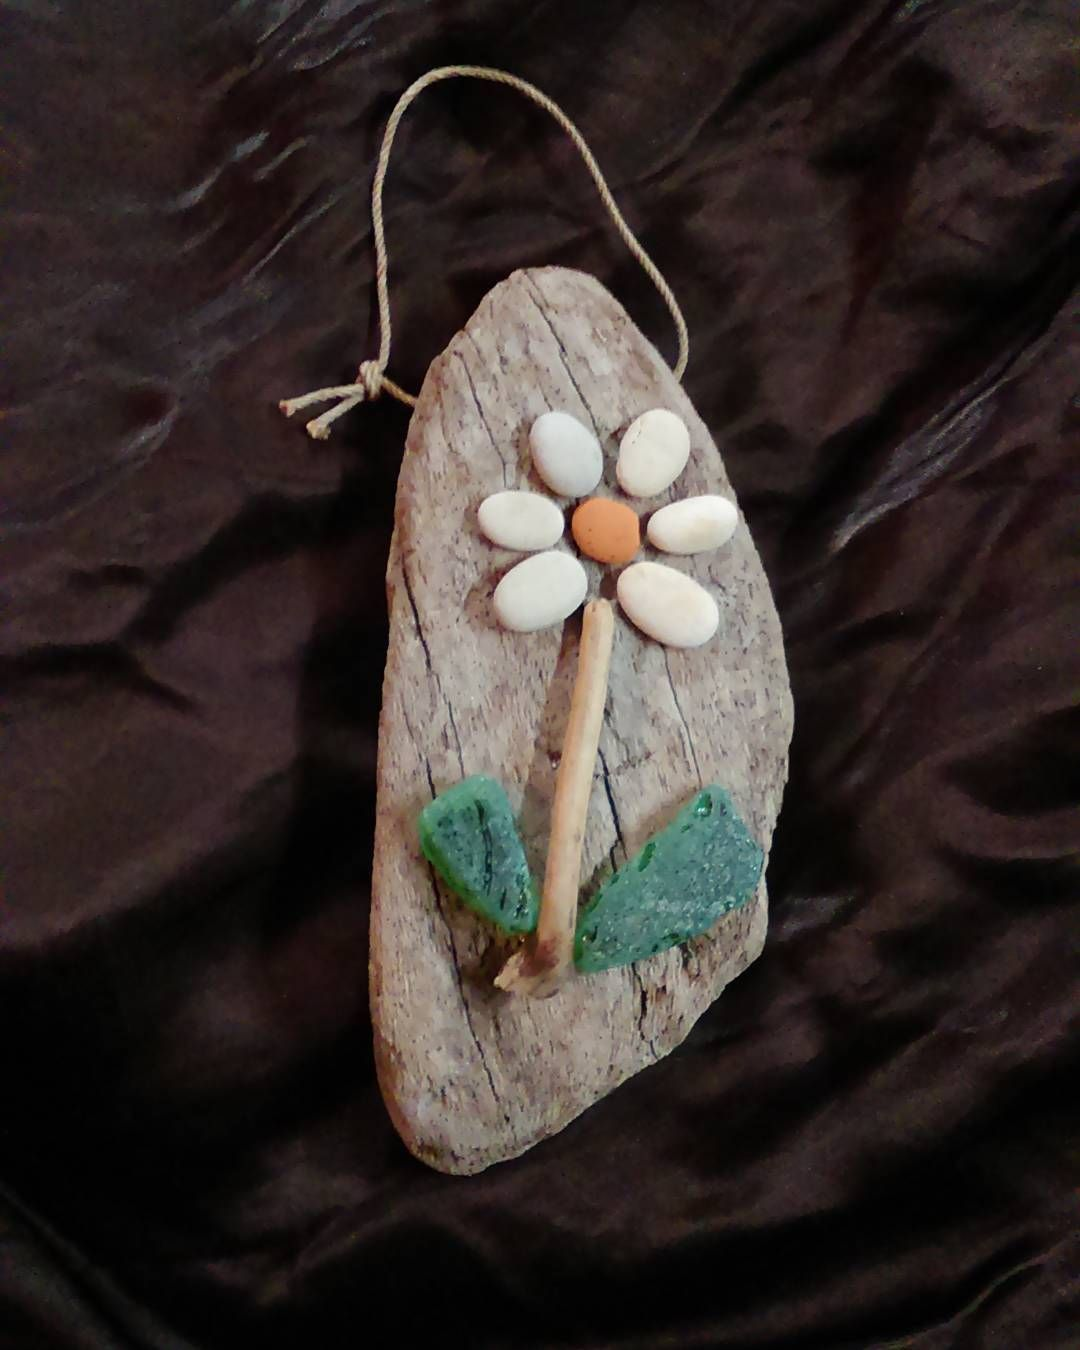 A small gift to one nice person #AGartdriftwood #wallart #driftwoodart #seaglass #pebbleart #fromcroatiawithlove #oneofakind #naturalart